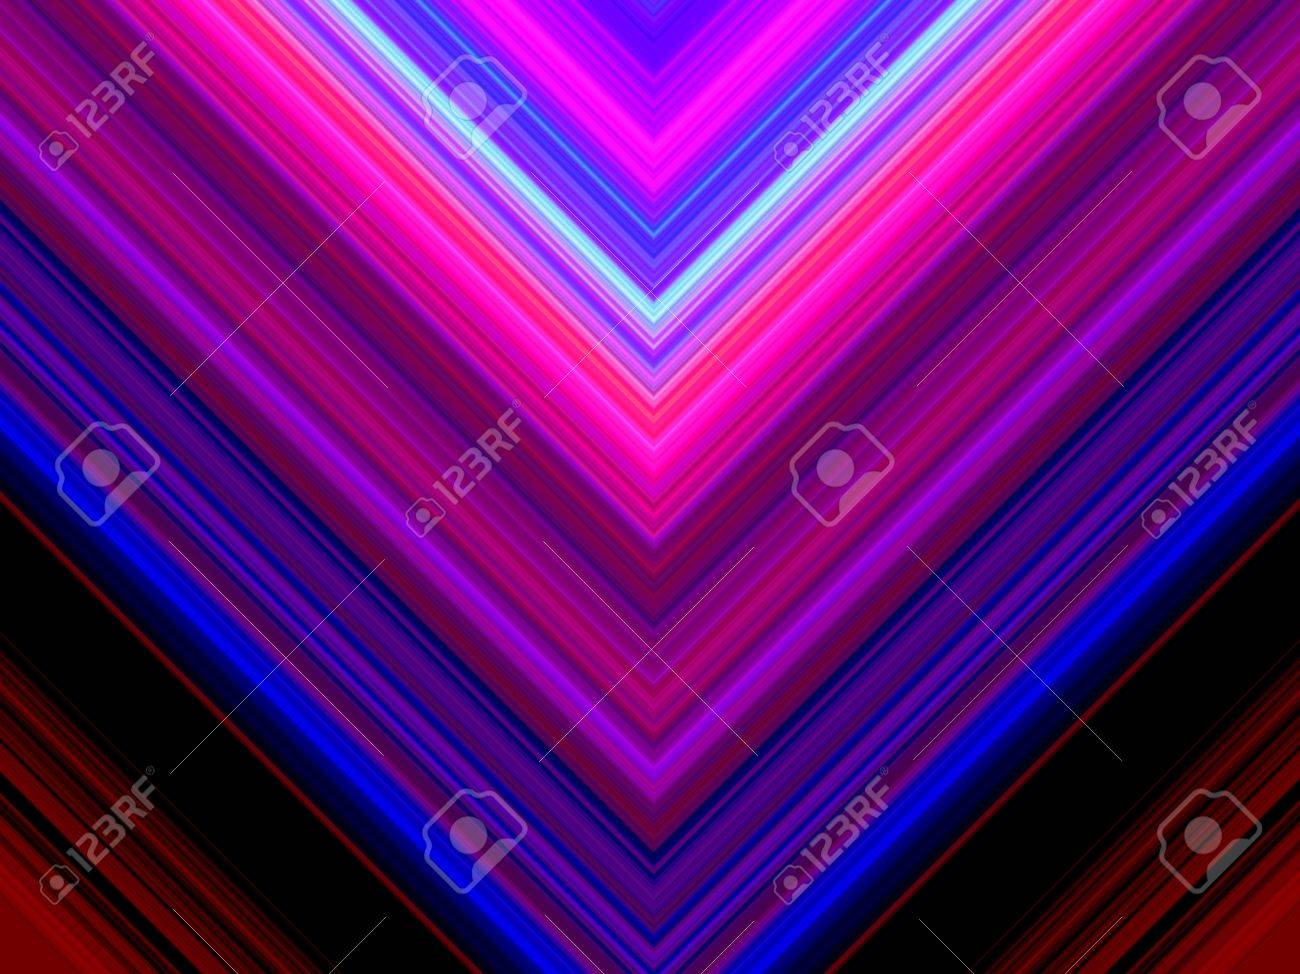 Background image linear gradient - Linear Gradient Colour Background Wallapaer Poster Graphic Stock Photo 736387